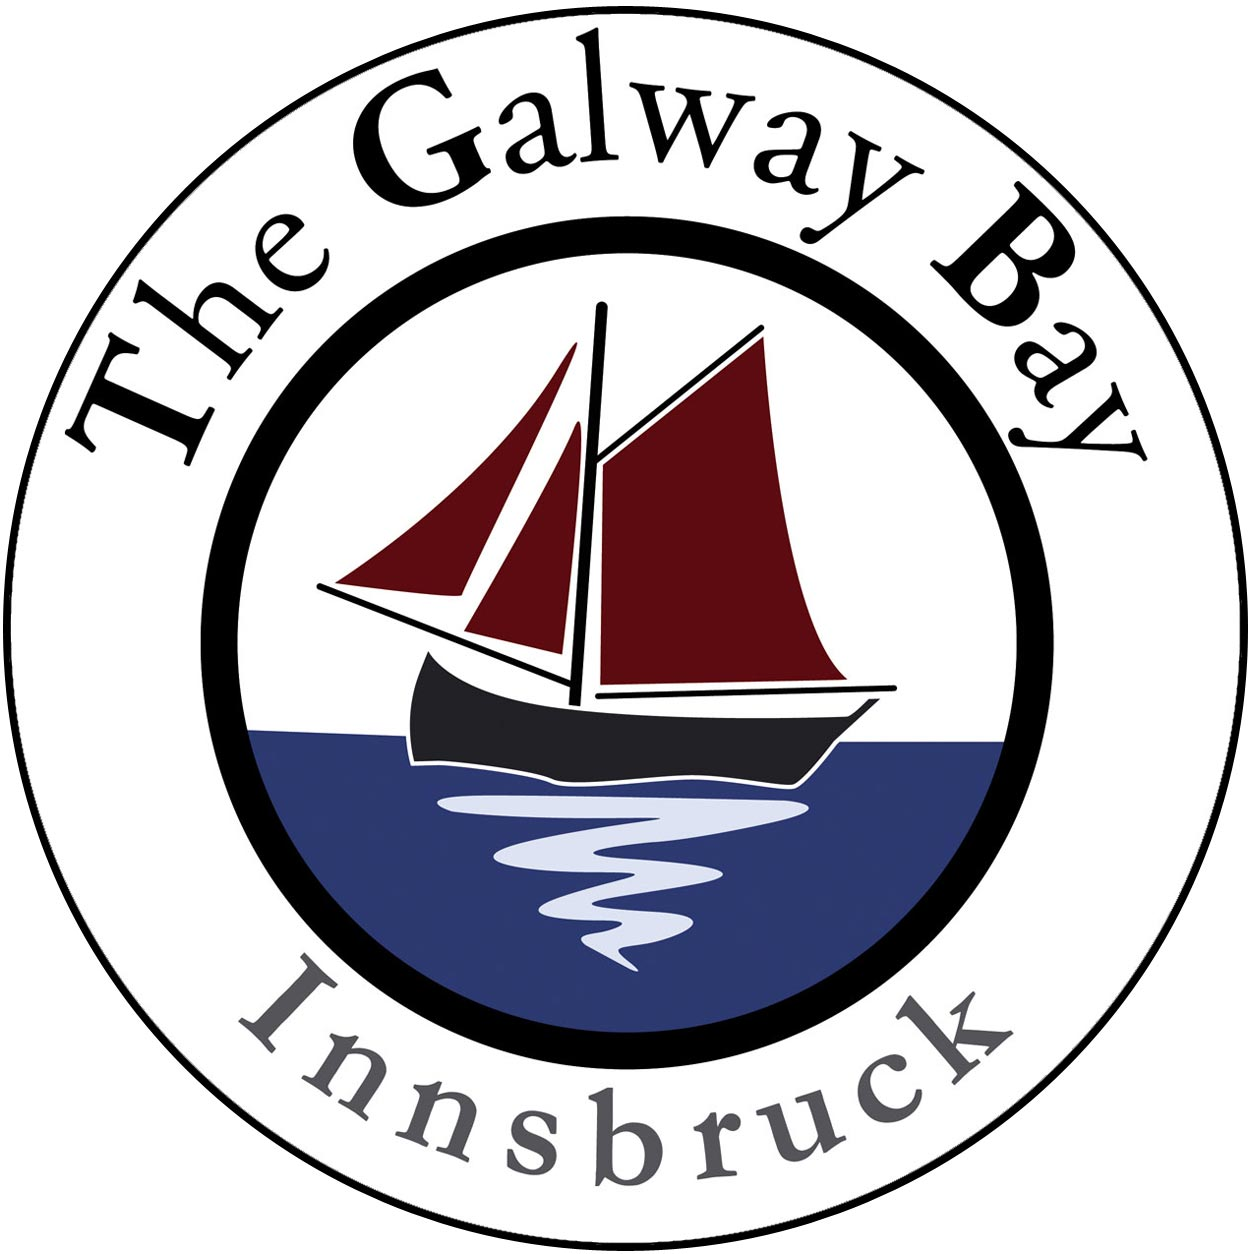 The Galway Bay Innsbruck